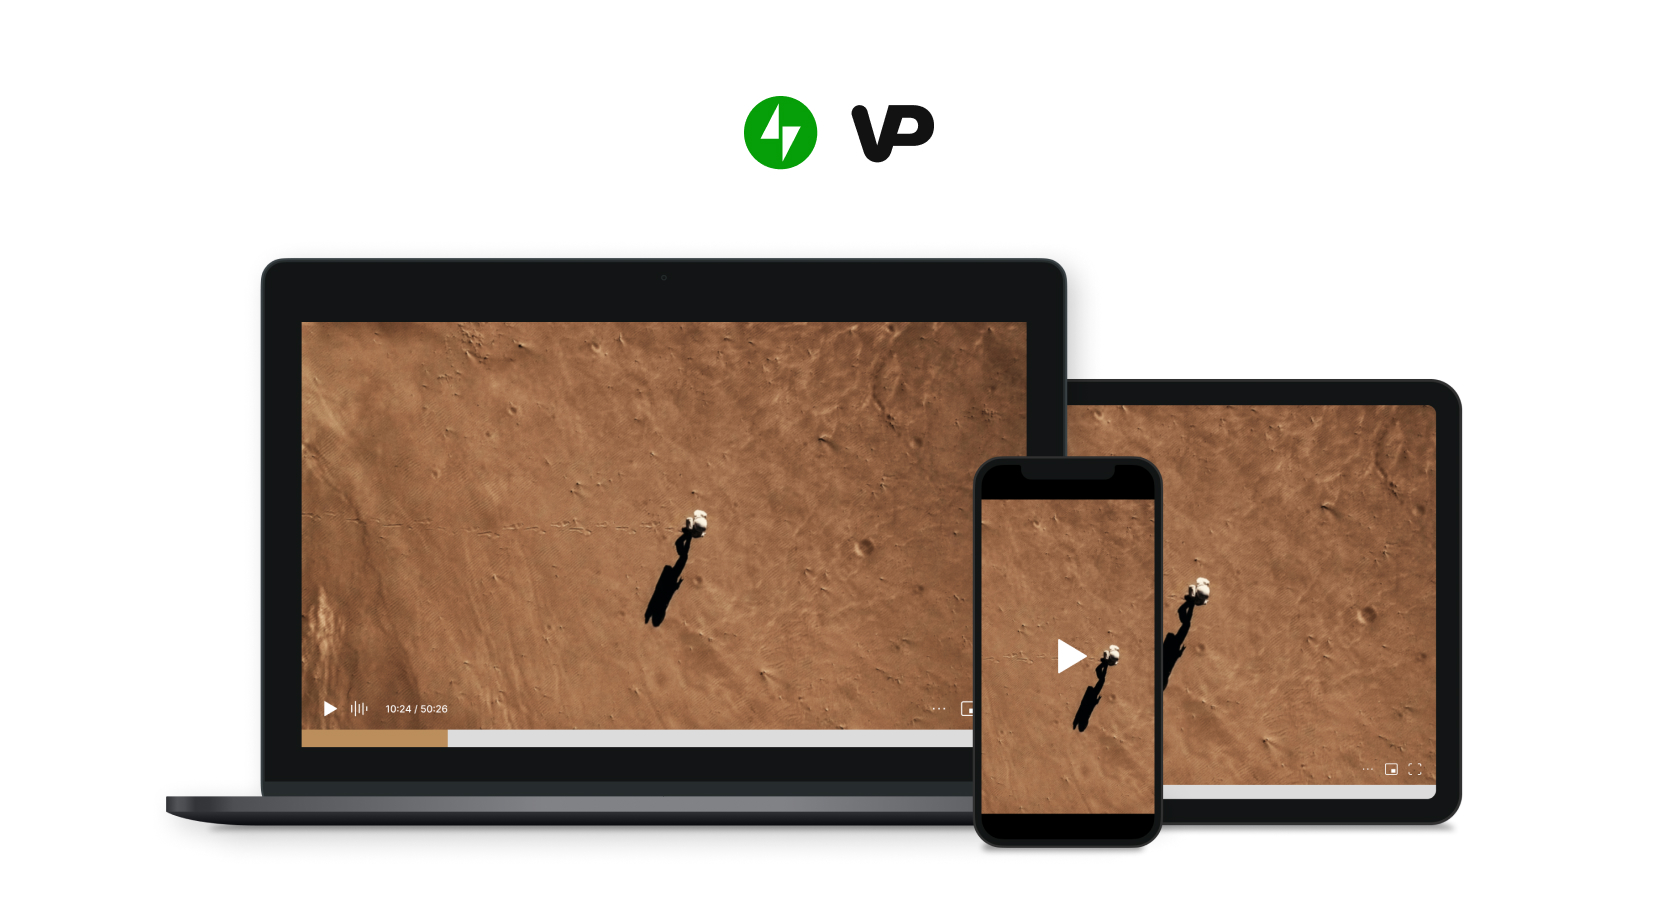 Announcing Jetpack VideoPress: Ad-free, HD video for WordPress